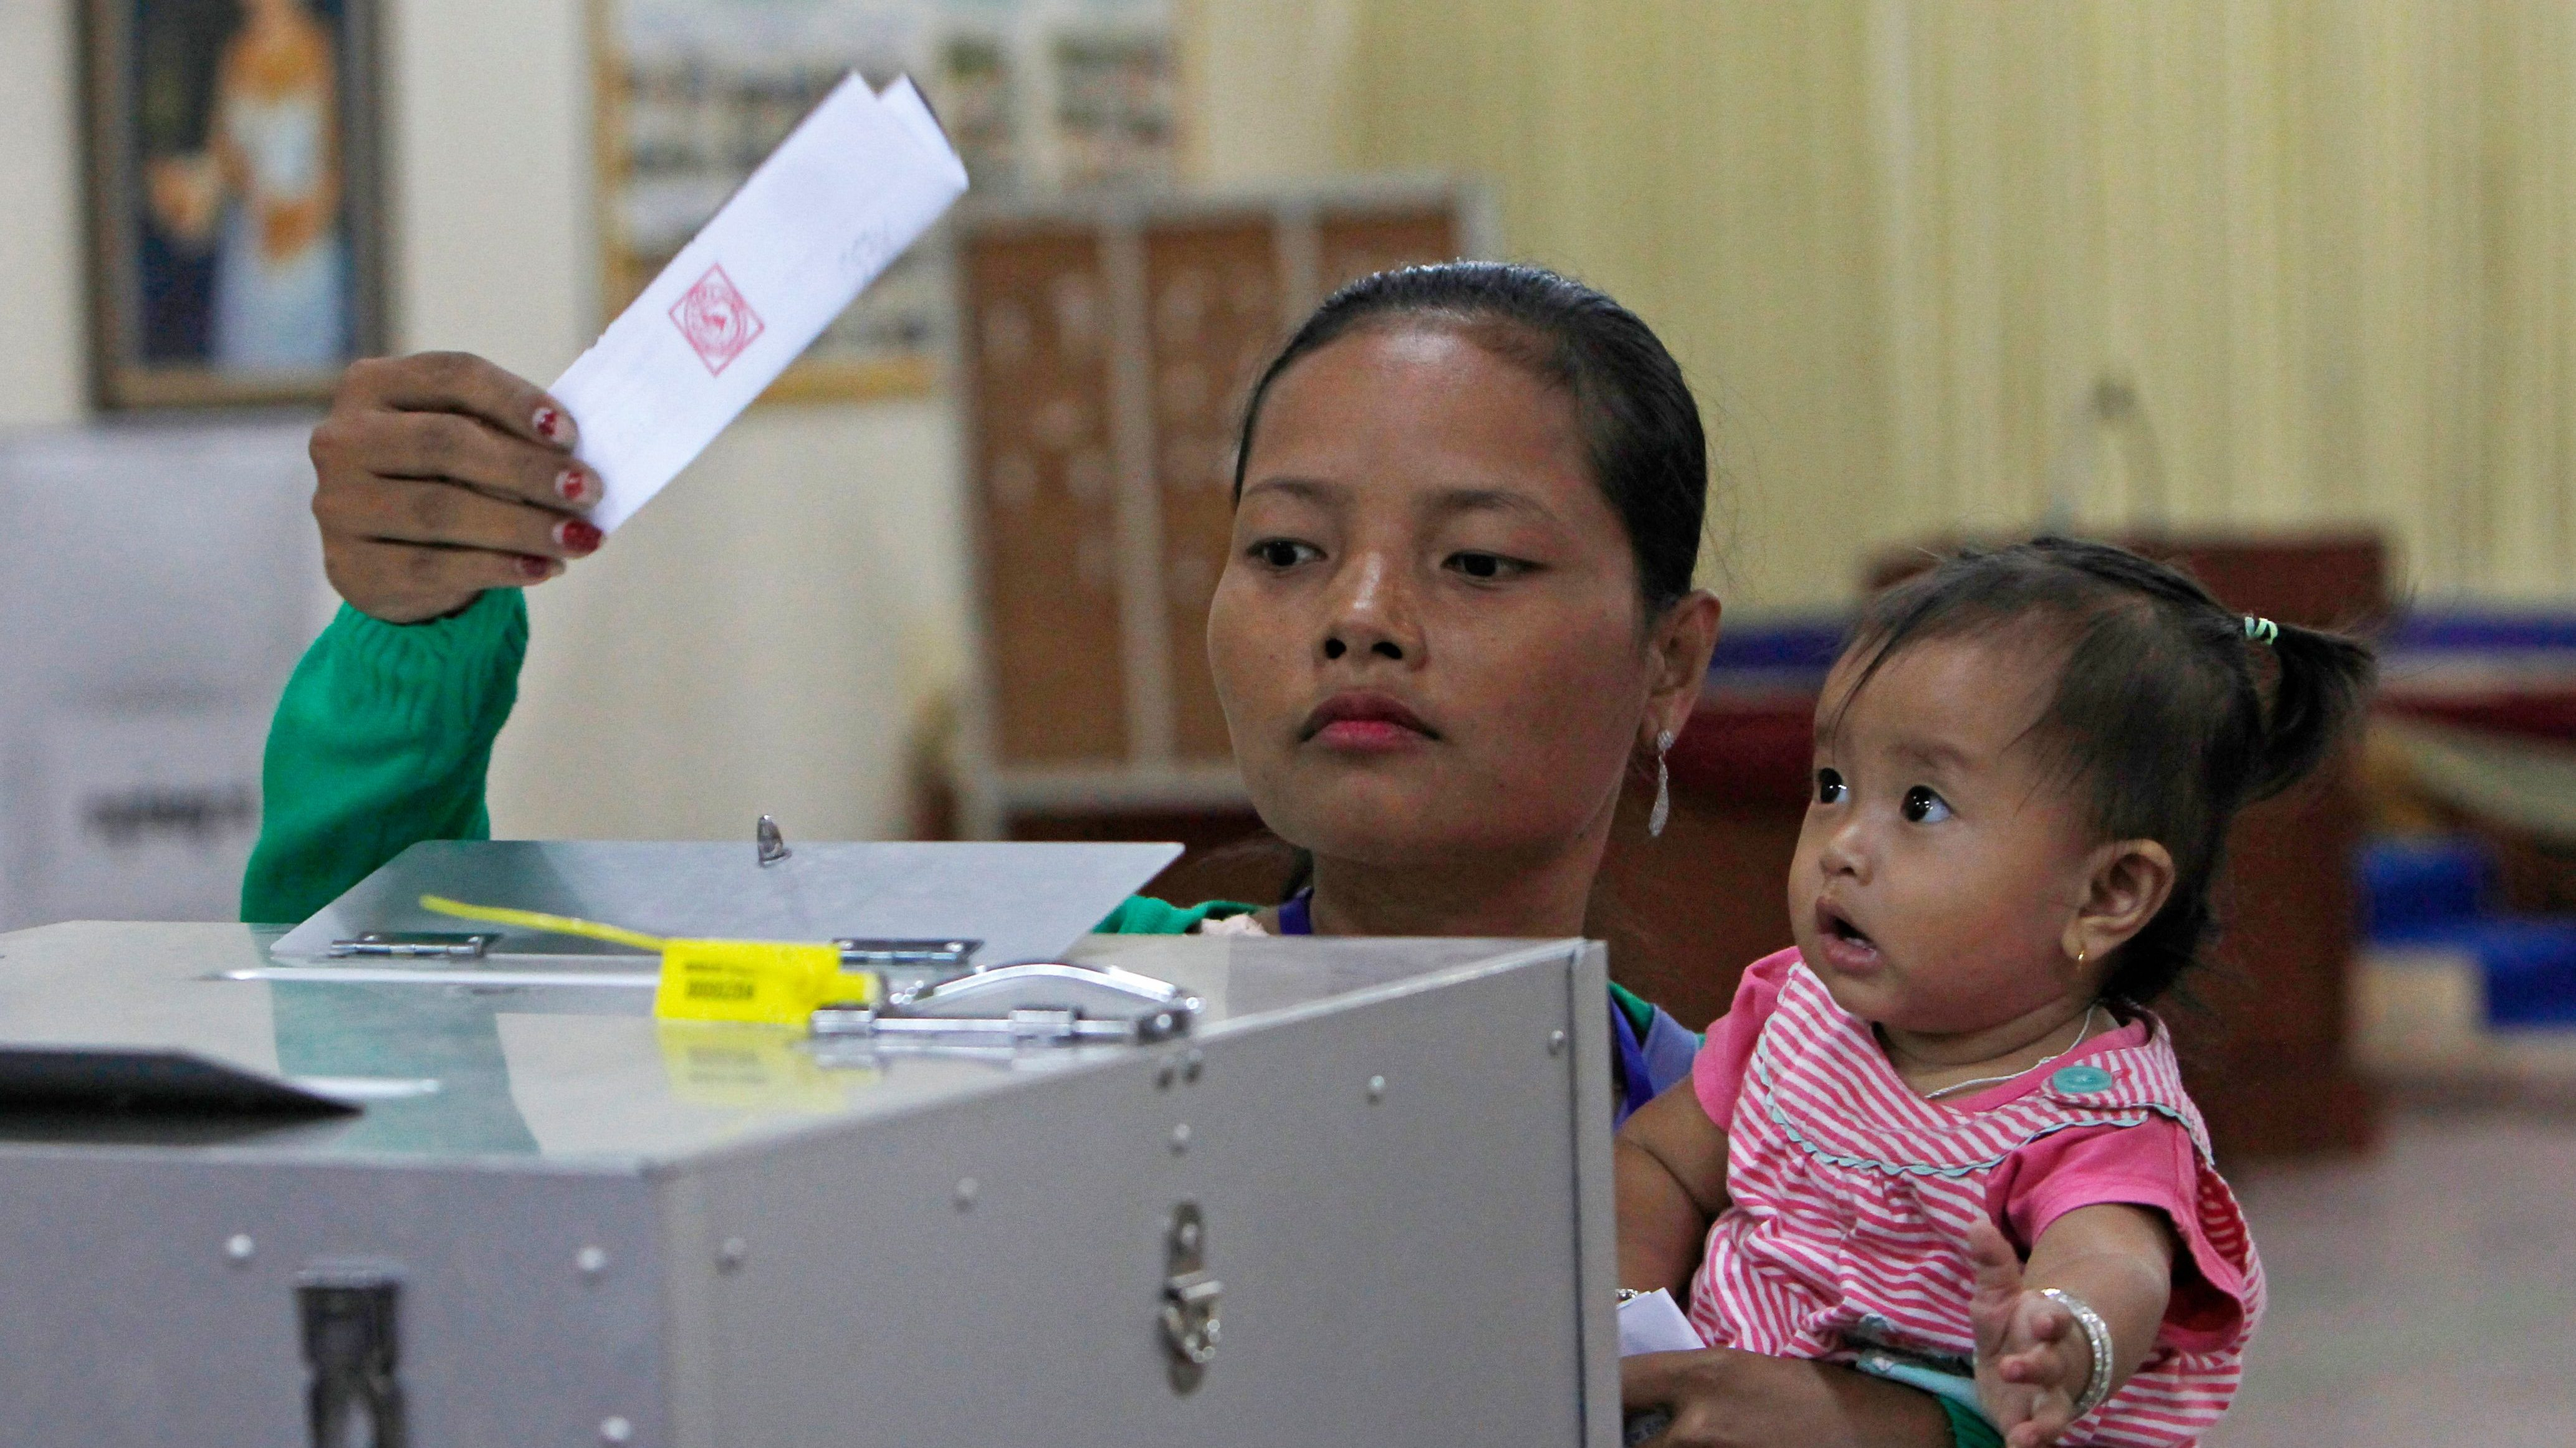 Cambodian woman votes a ballot for the senate election at Takhmau polling station in Kandal province, southeast of Phnom Penh, Cambodia, Sunday, Feb. 25, 2018. Cambodia's ruling party is assured of a sweeping victory in the election of a new Senate after the only real opposition to it was eliminated.